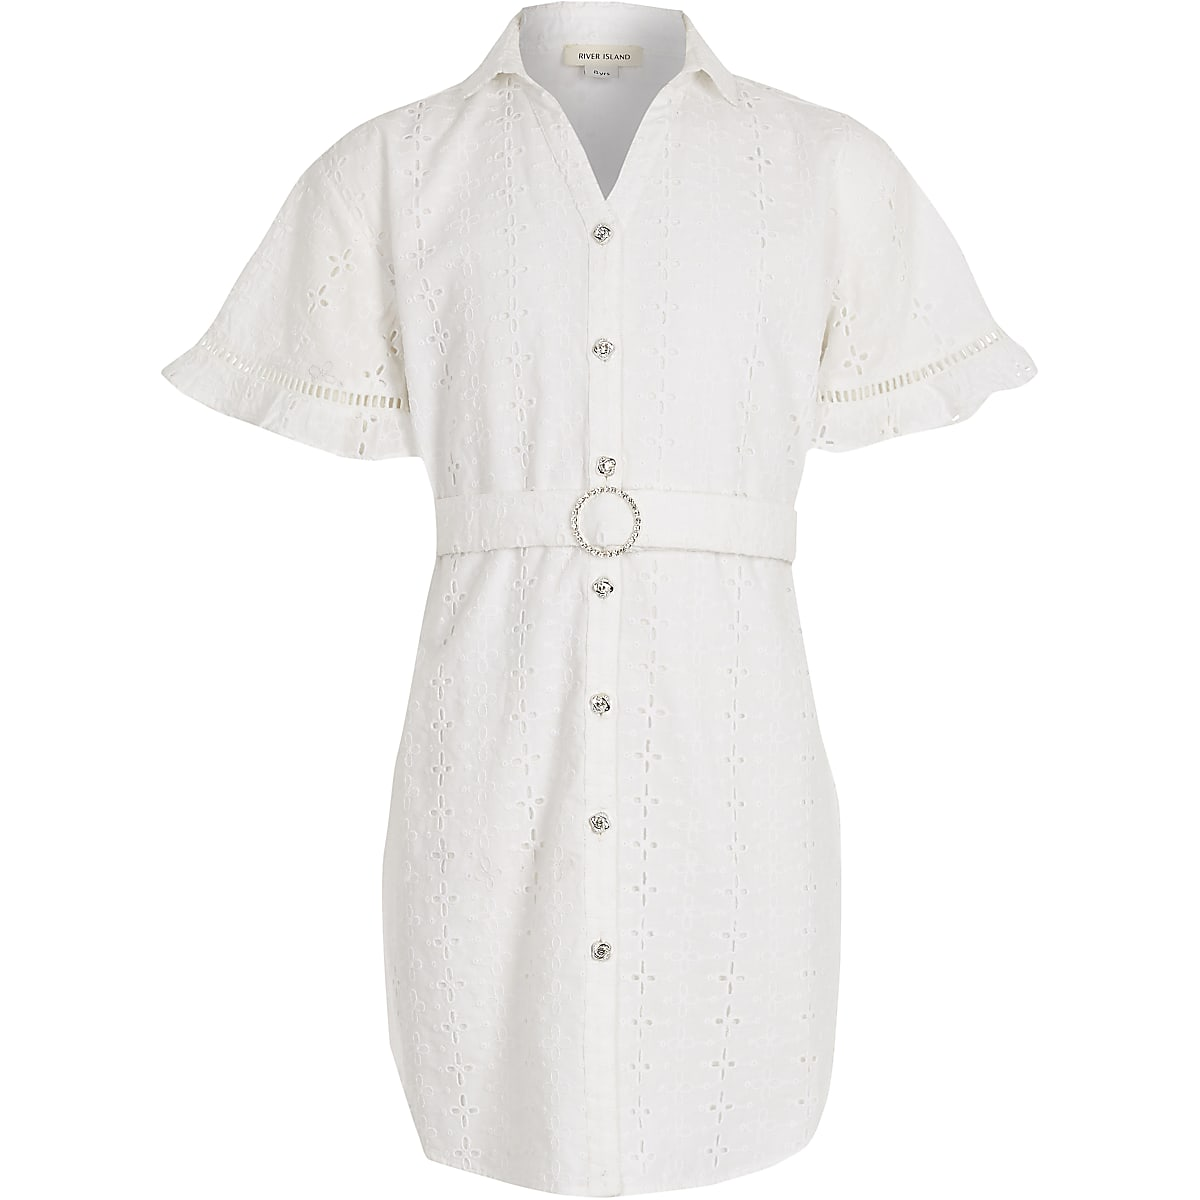 788178da0a1 Girls white broderie shirt dress - Day Dresses - Dresses - girls